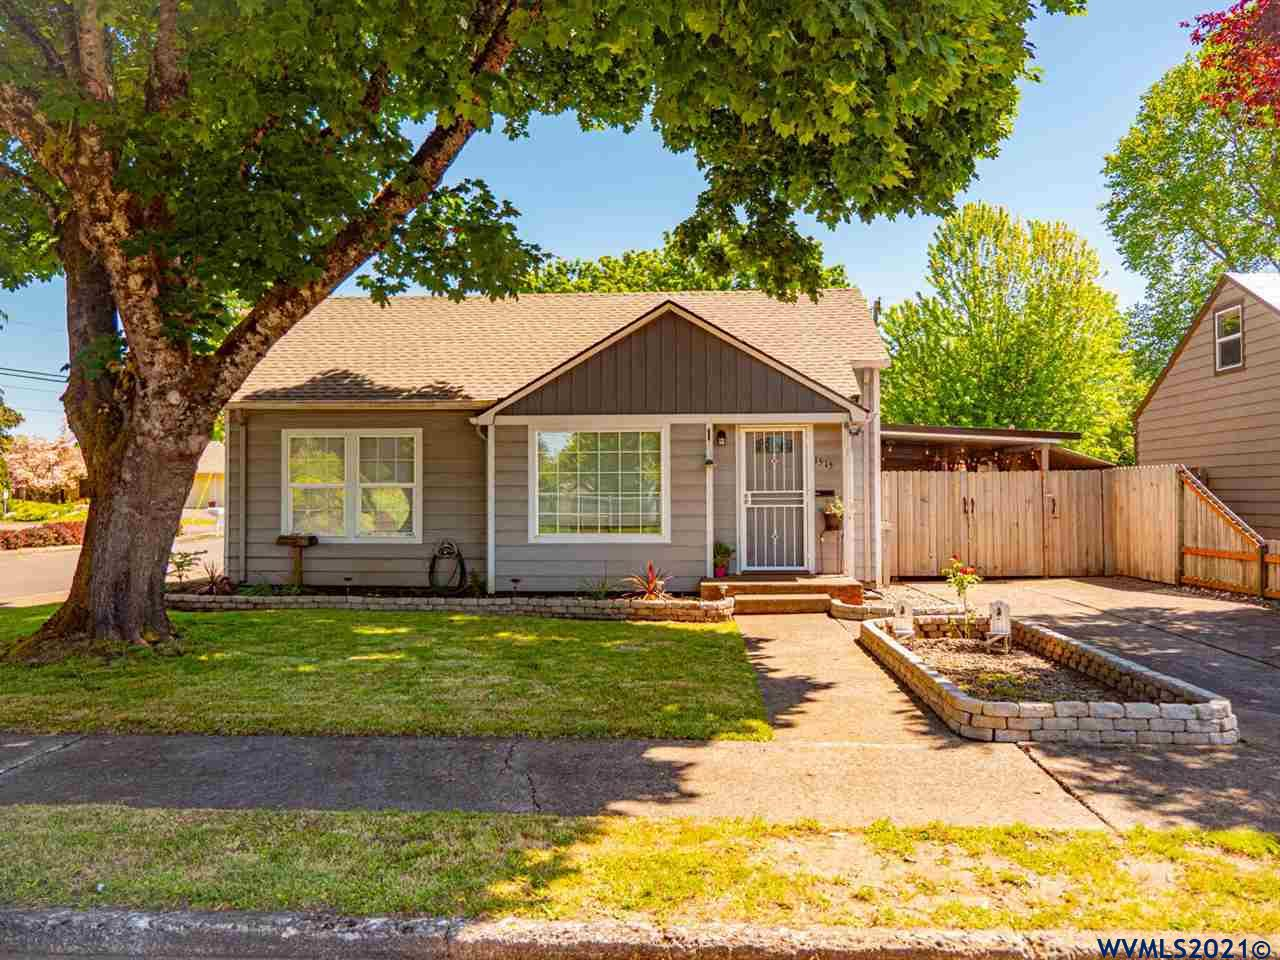 This beautiful little starter is updated & looking for new owners! Updates include windows, roof, laminate & tile flooring, tile surround in bath, recessed lighting & ceiling fan, etc. Sitting on an amazing corner lot w/ a spacious fenced backyard that includes gate access for trailer or RV parking, & a shed/workshop. Single carport off the kitchen can be used for parking or as a covered patio for additional outdoor enjoyment. The attic has potential to be converted to additional living space.